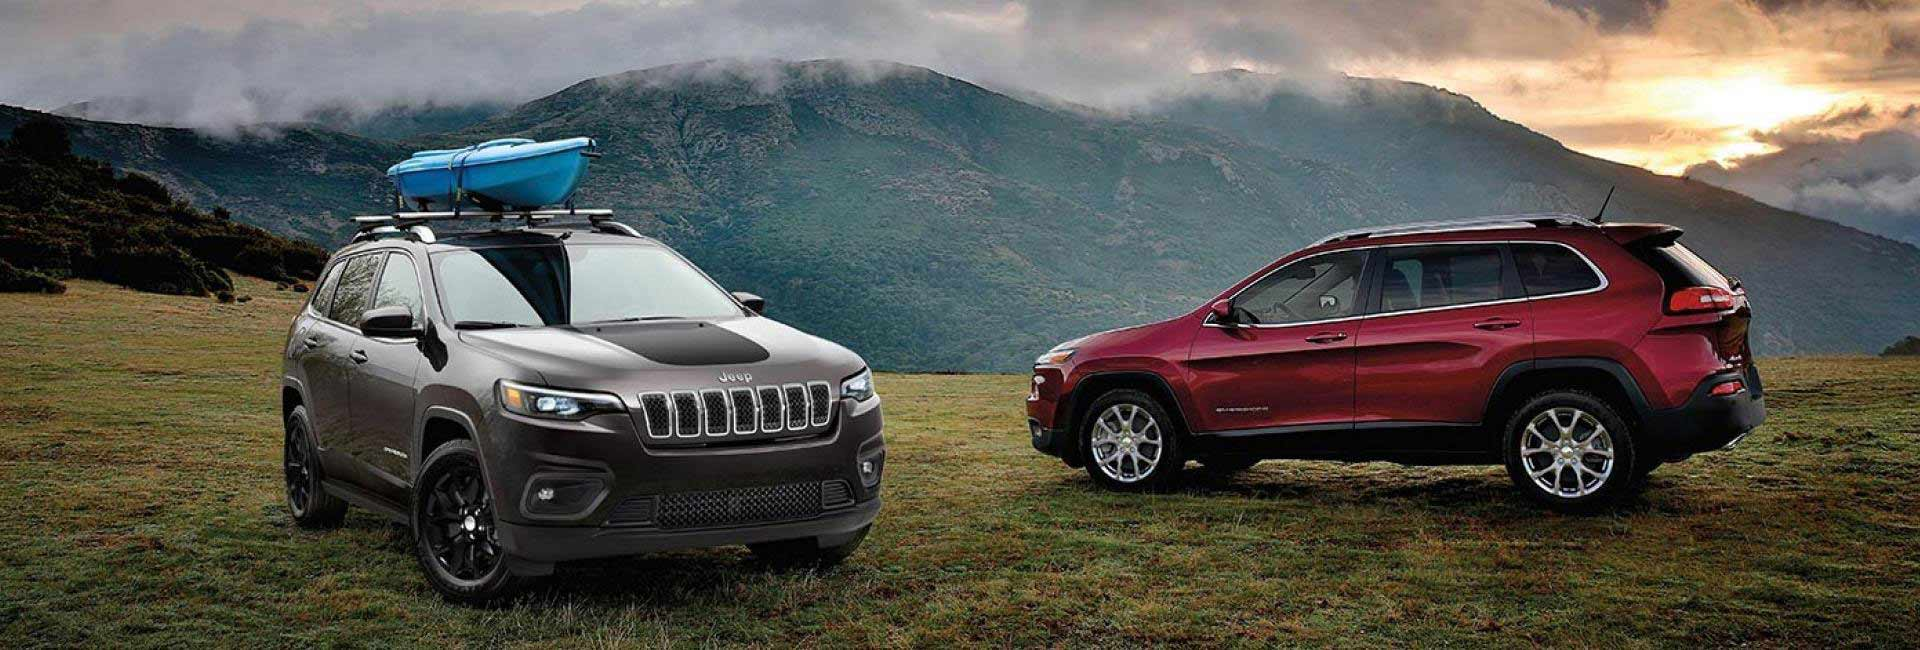 Exterior image of the 2020 Jeep Cherokee